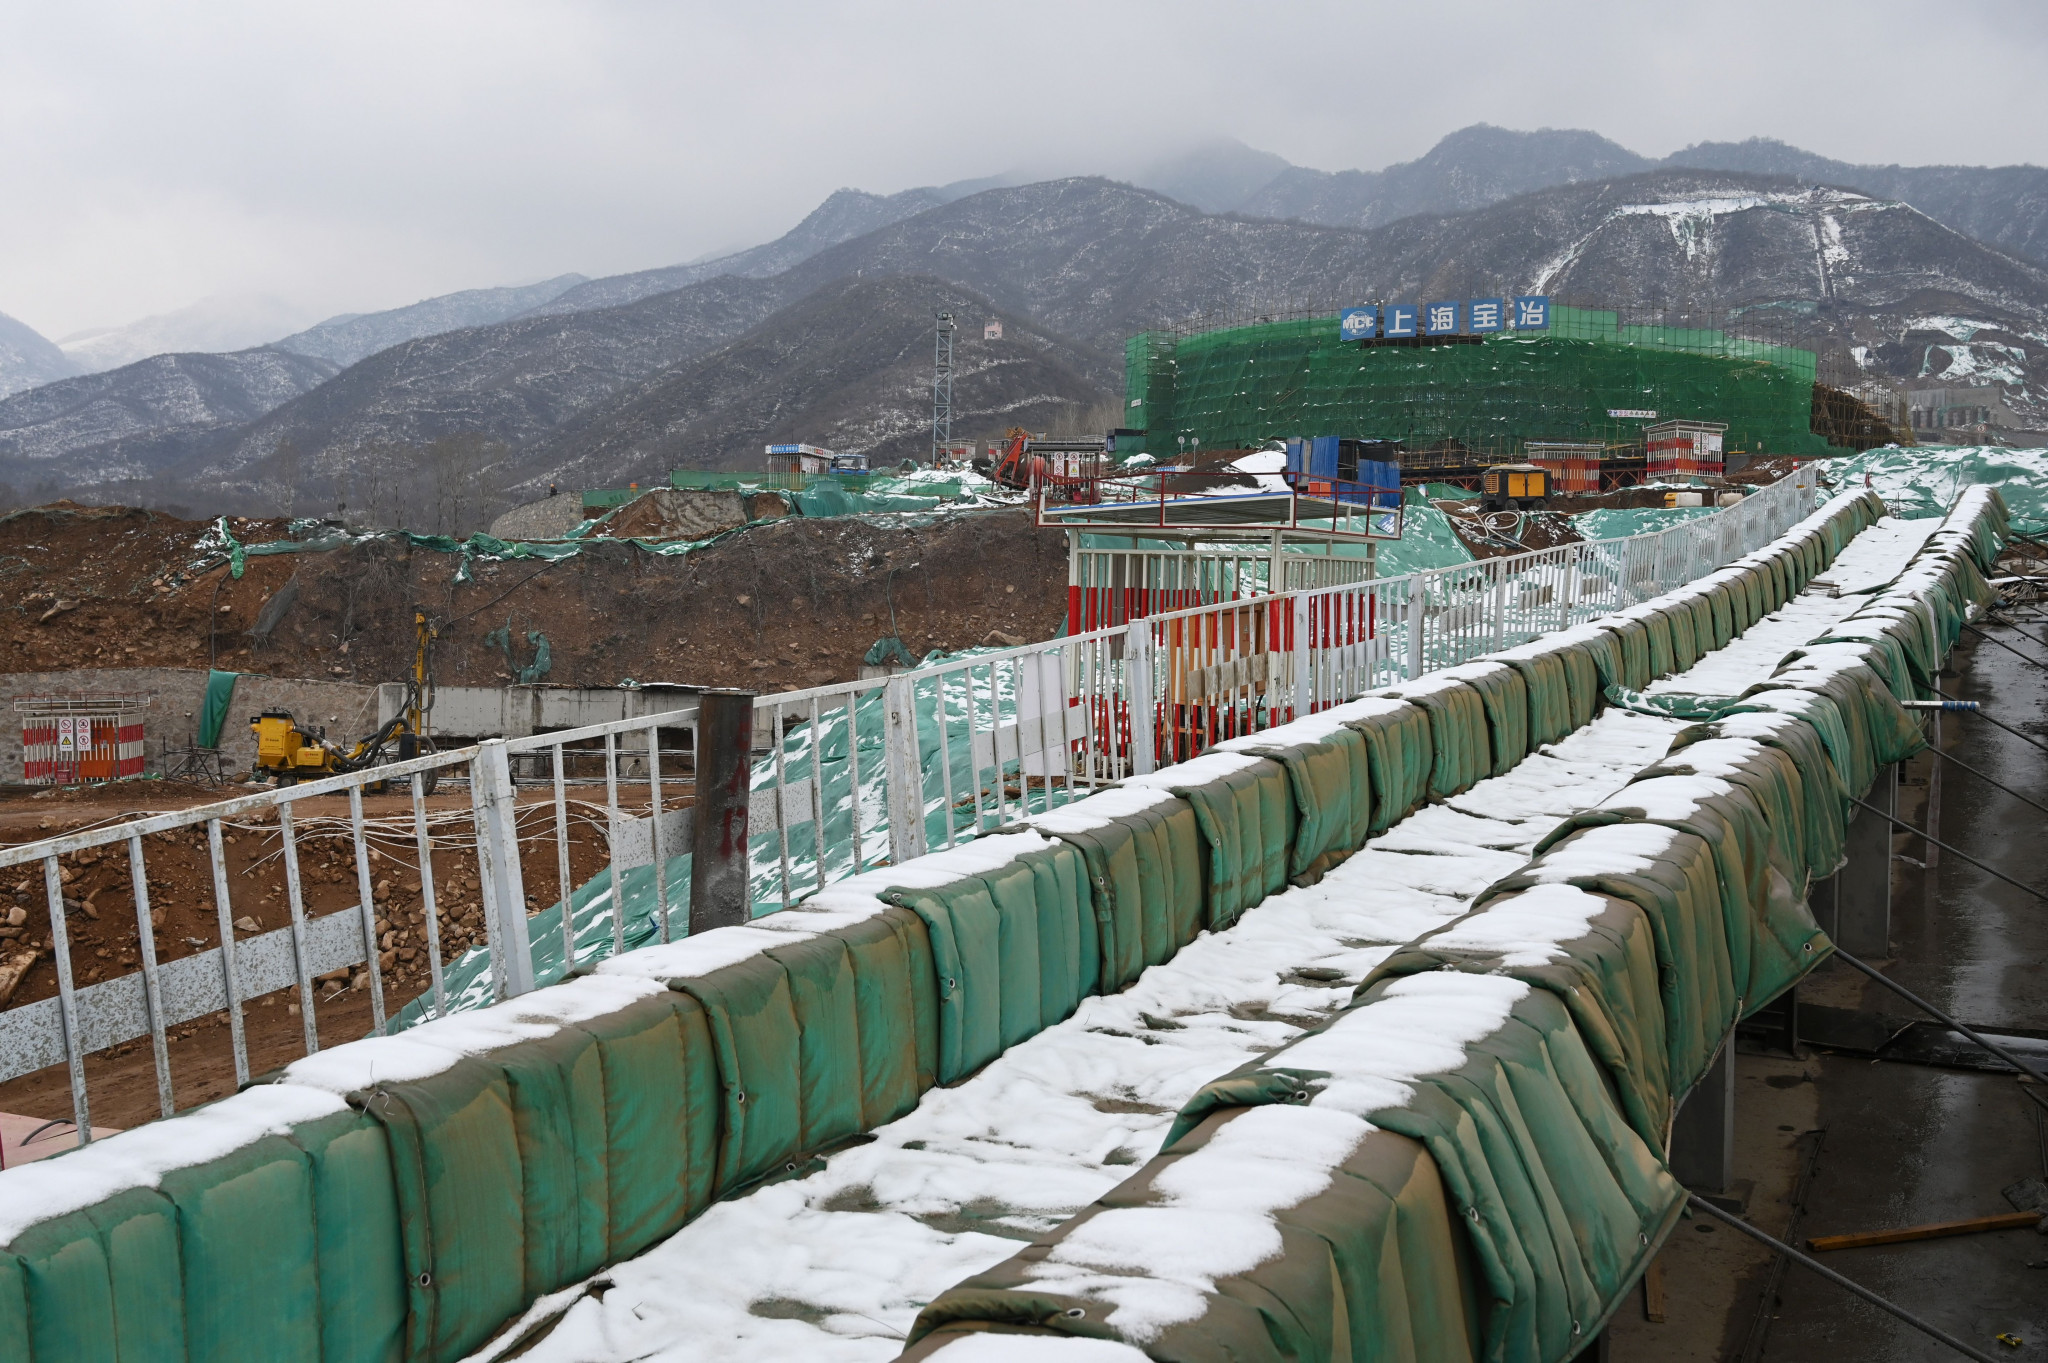 The Xiaohaituo Bobsleigh, Skeleton and Luge Track is scheduled to be ready for testing in June 2020 ©Getty Images